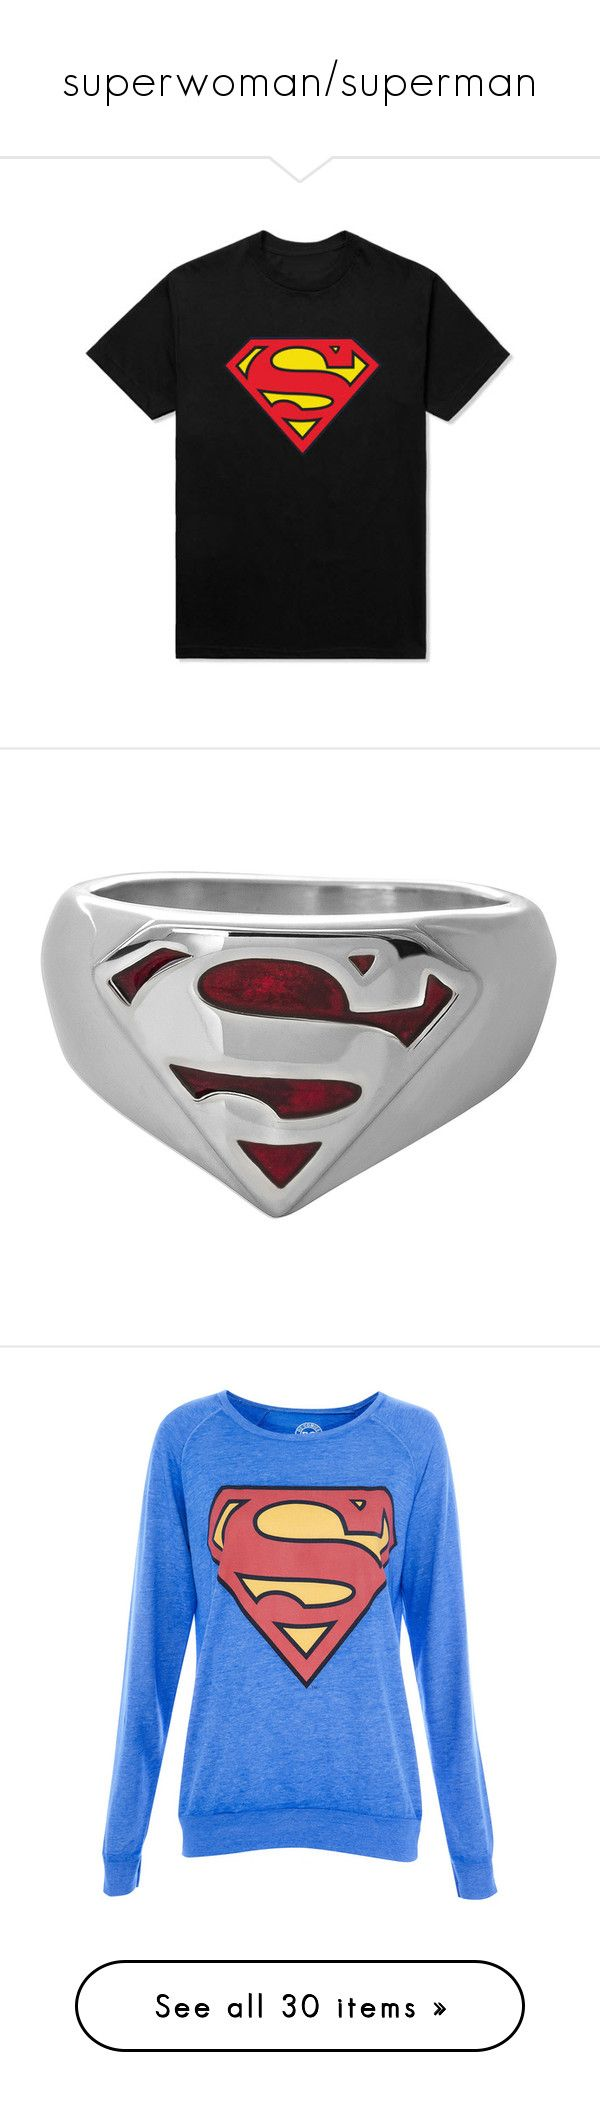 """""""superwoman/superman"""" by coolcat64265leeacoiron ❤ liked on Polyvore featuring tops, t-shirts, cotton t shirts, cotton tees, jewelry, rings, accessories, comics, stainless steel superman ring and stainless steel rings"""